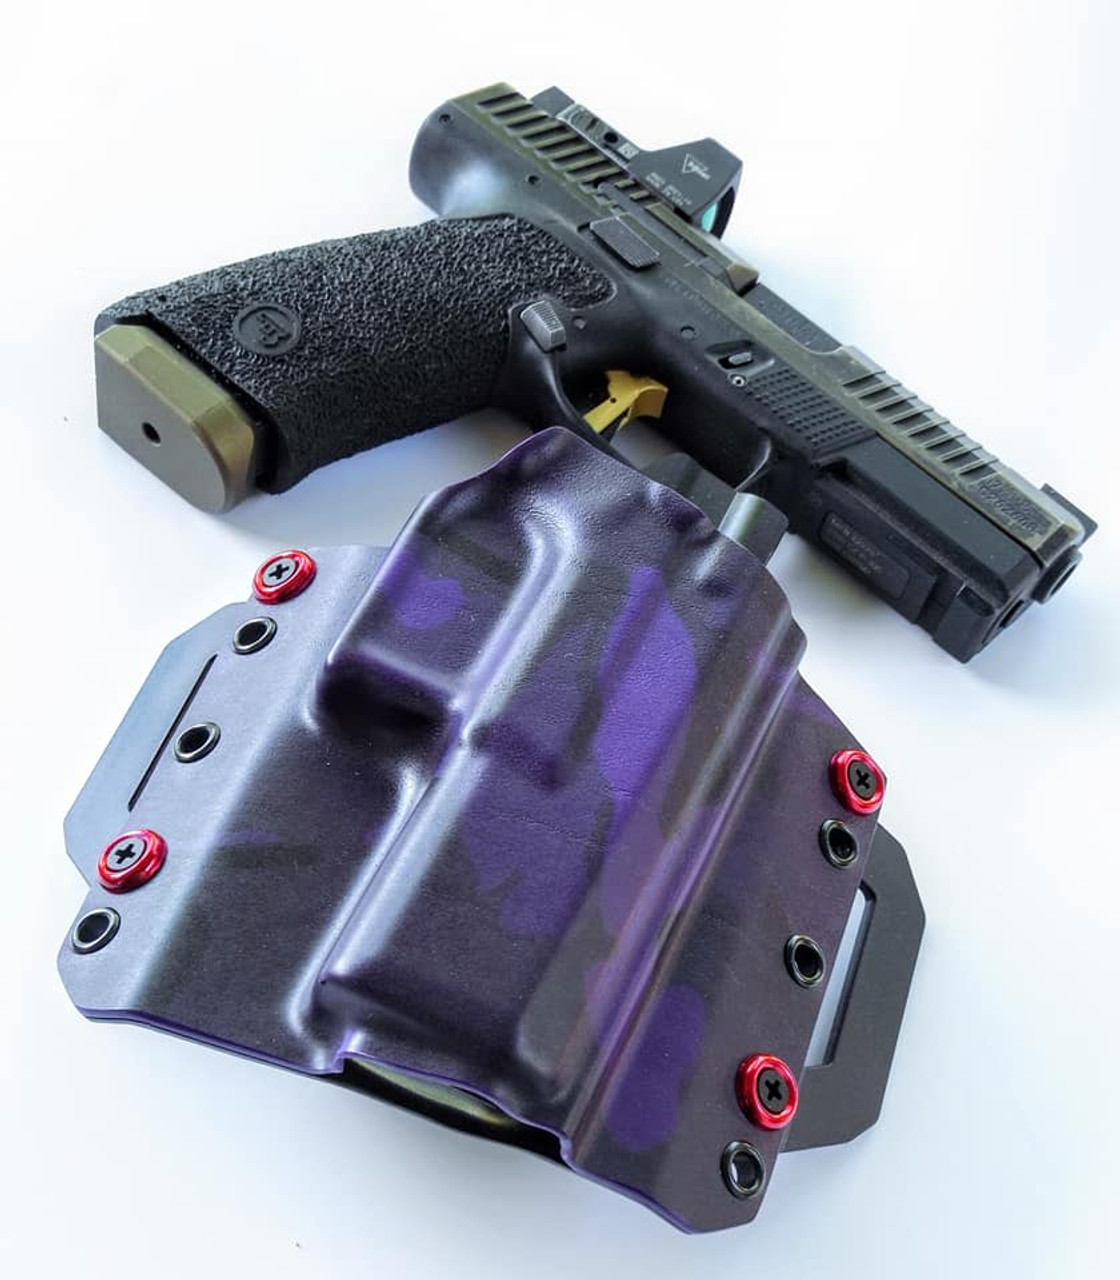 CZ P10c Outside Waistband Kydex Holster